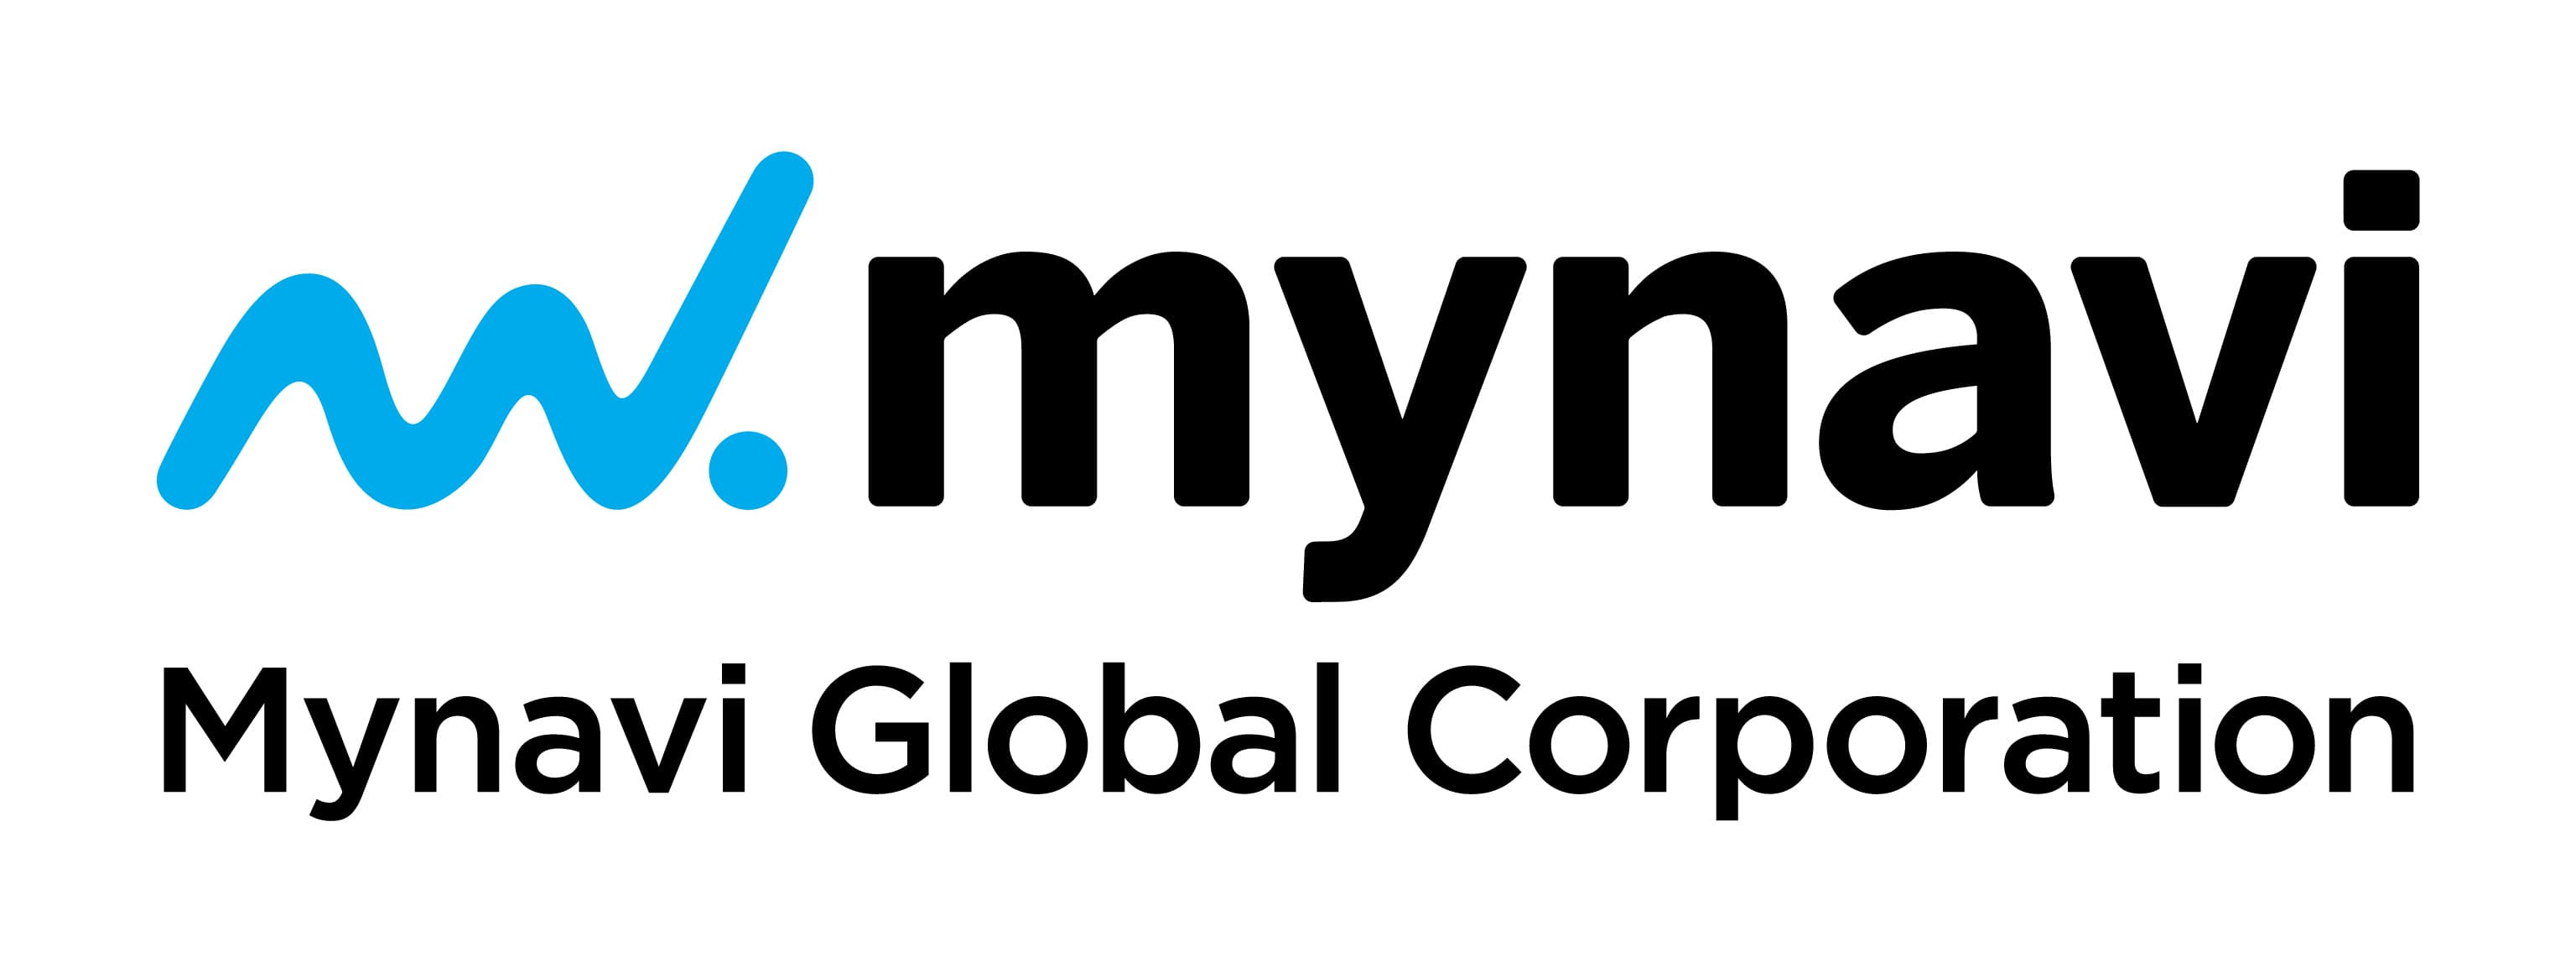 mynavi global